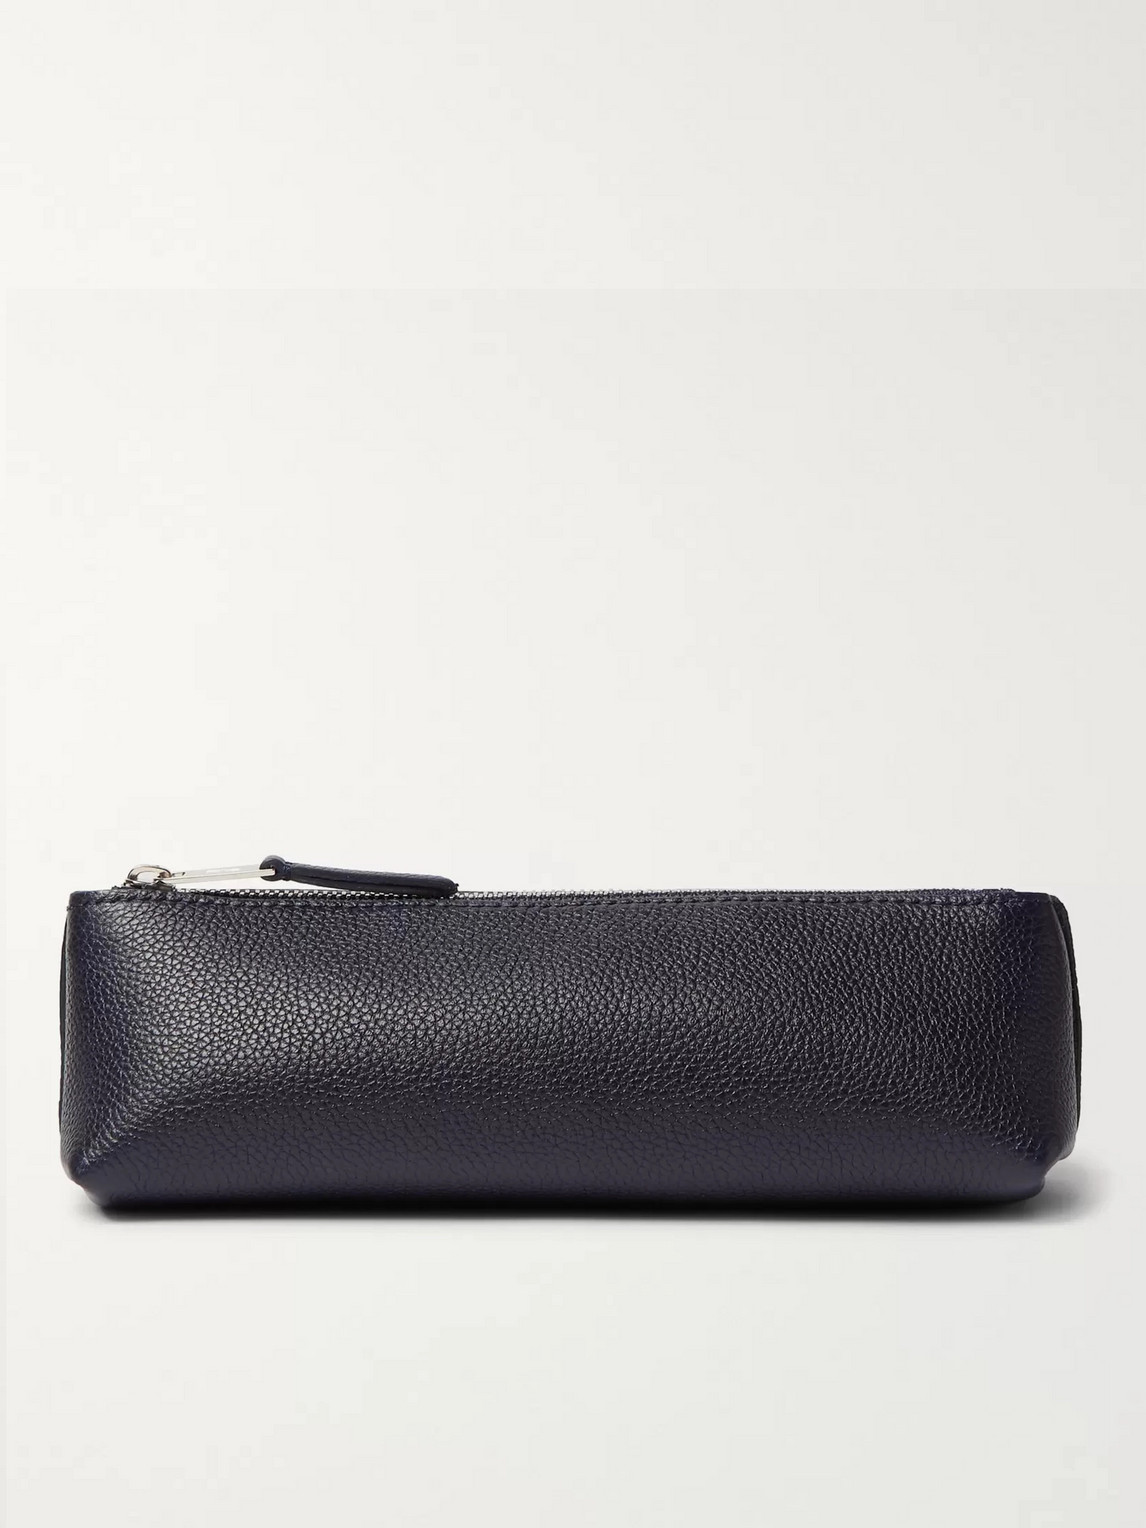 William & Son Bruton Full-grain Leather Pencil Case In Blue